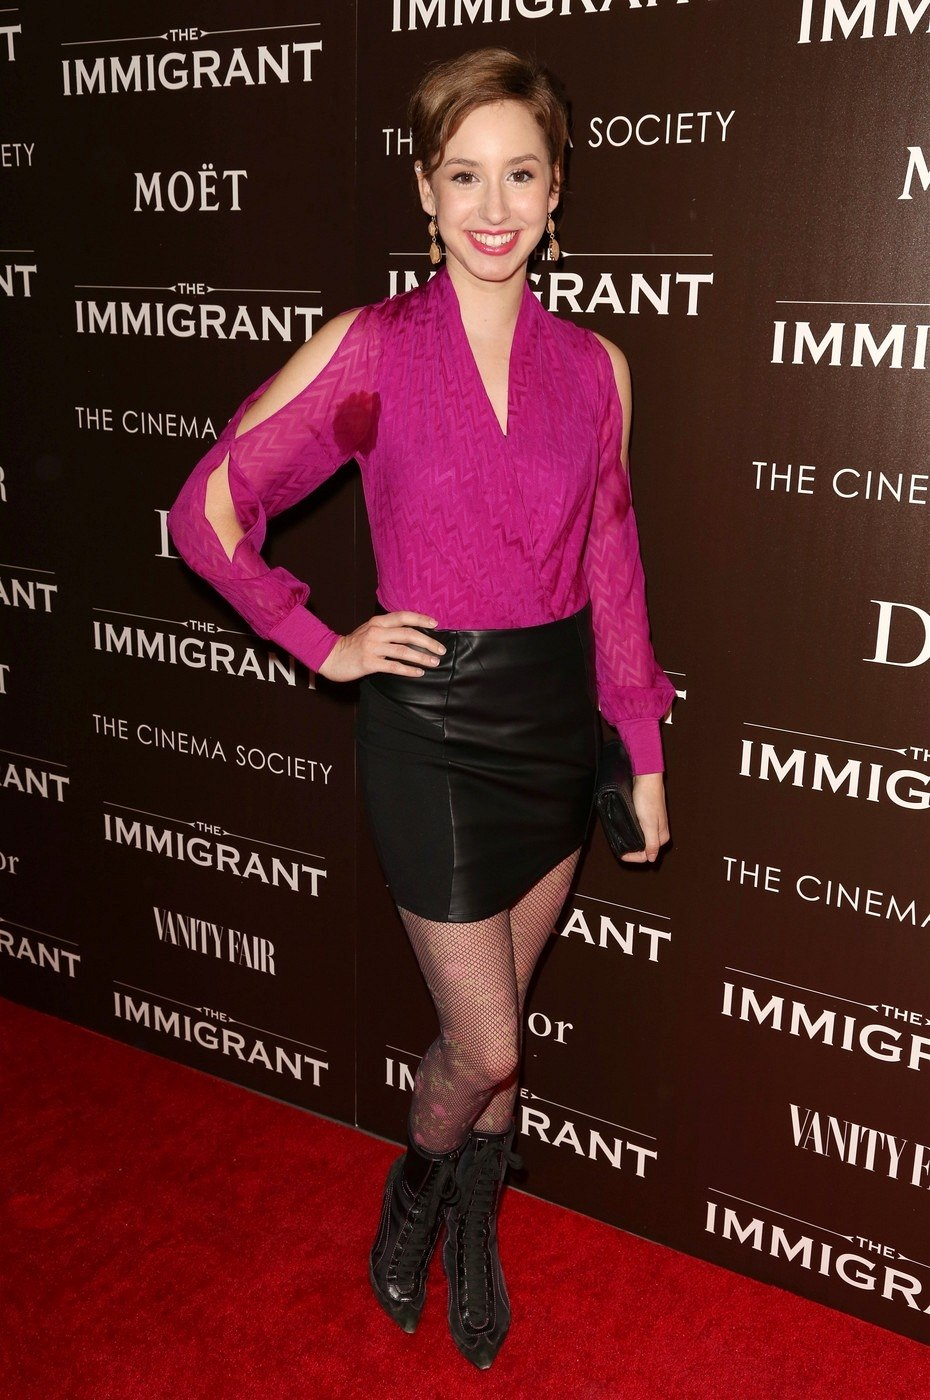 Jazmin Grace Grimaldiová na premiéře filmu The Immigrant (New York, 6. května...